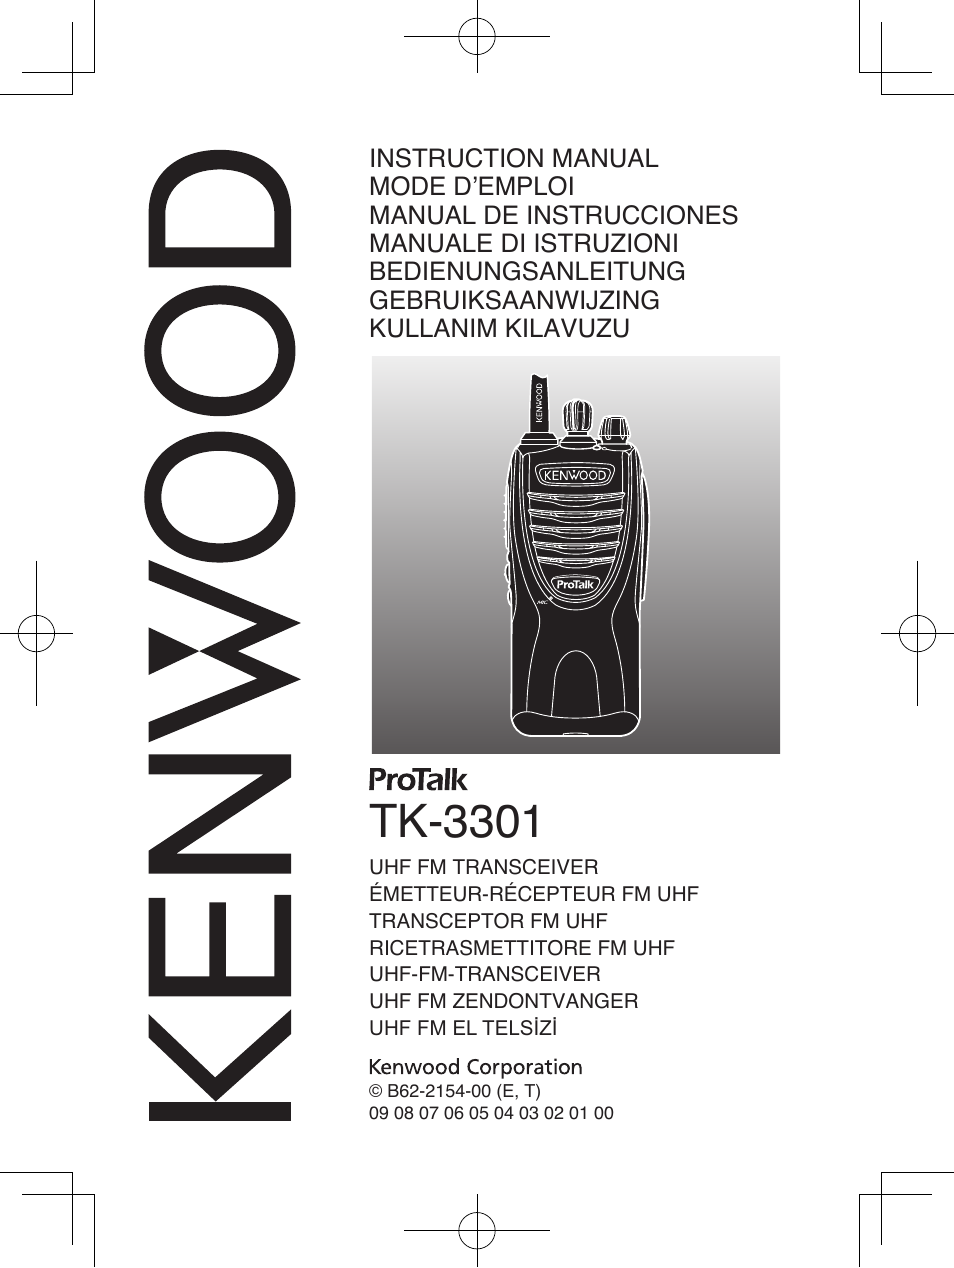 kenwood tk 3301e user manual 32 pages rh manualsdir com kenwood tk 3301 manual kenwood tk 3301 service manual